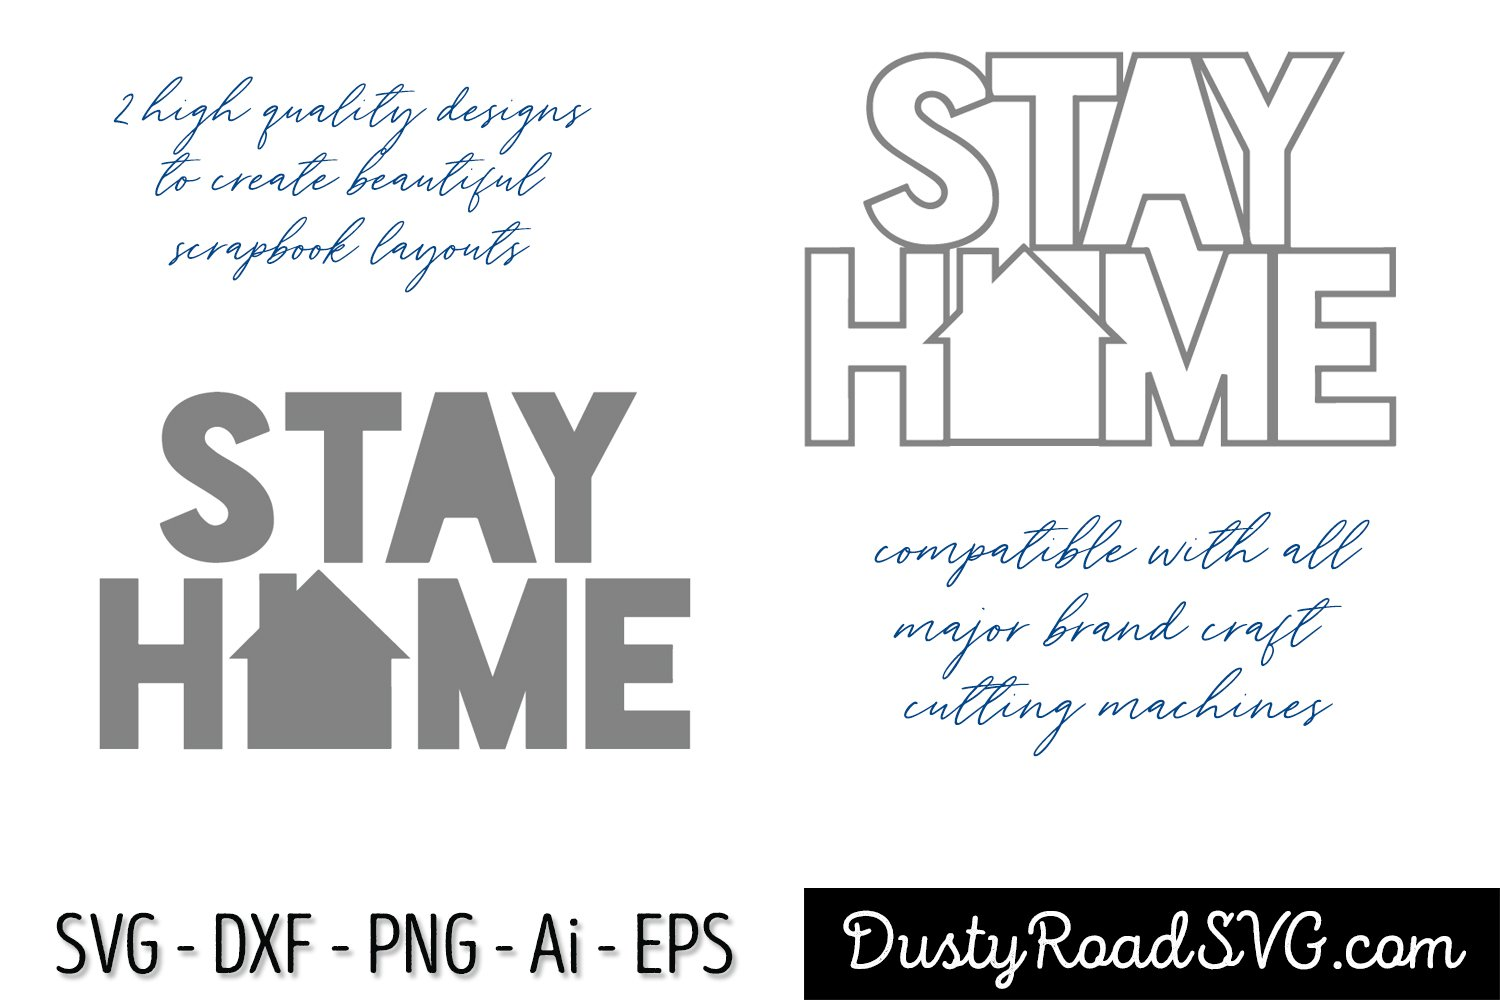 STAY HOME- Scrapbook - cut file - svg png eps dxf example image 2